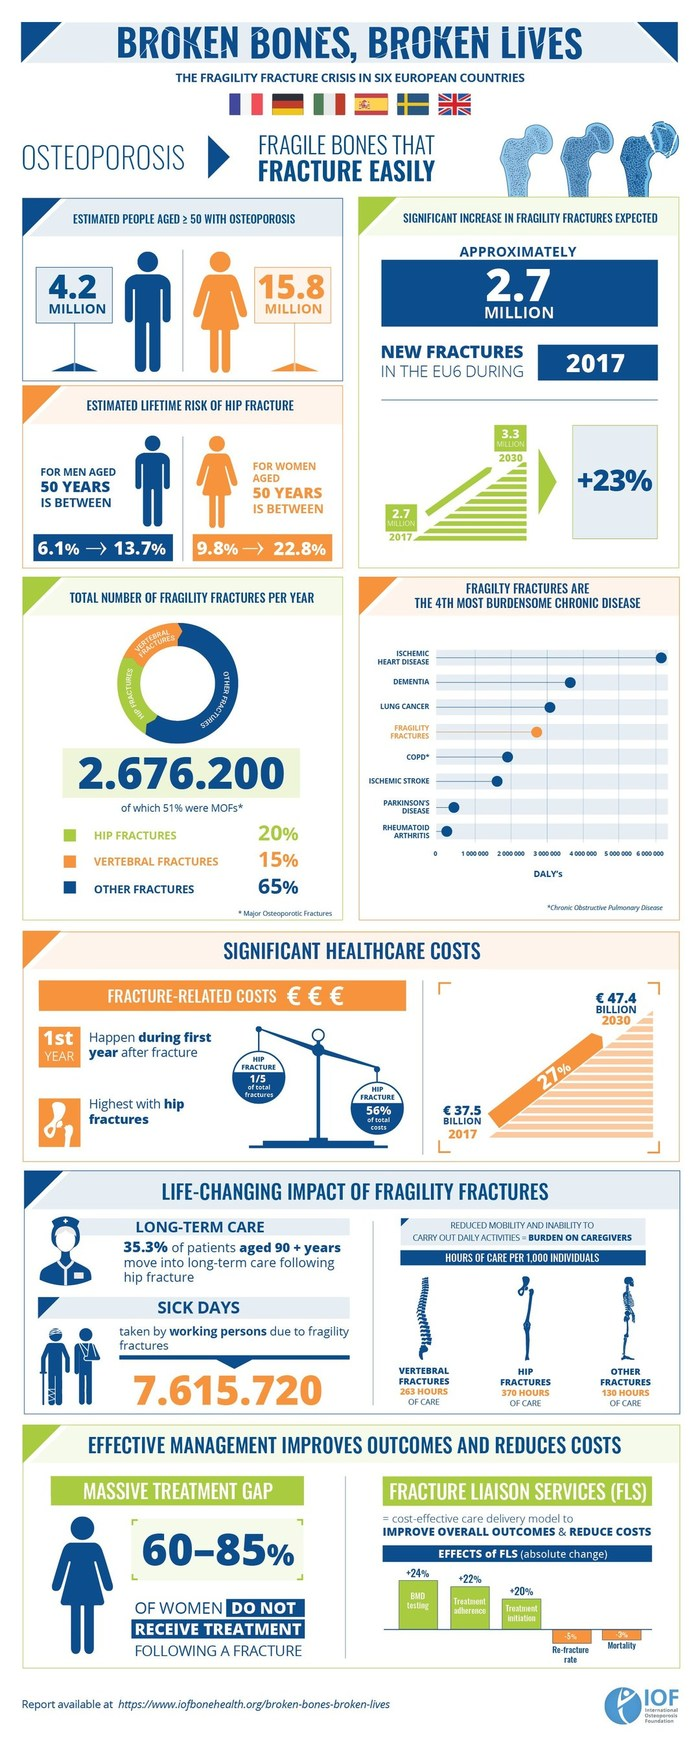 Burden of Fragility Fractures Costing European Health Systems Unnecessary Billions, New IOF Report Warns